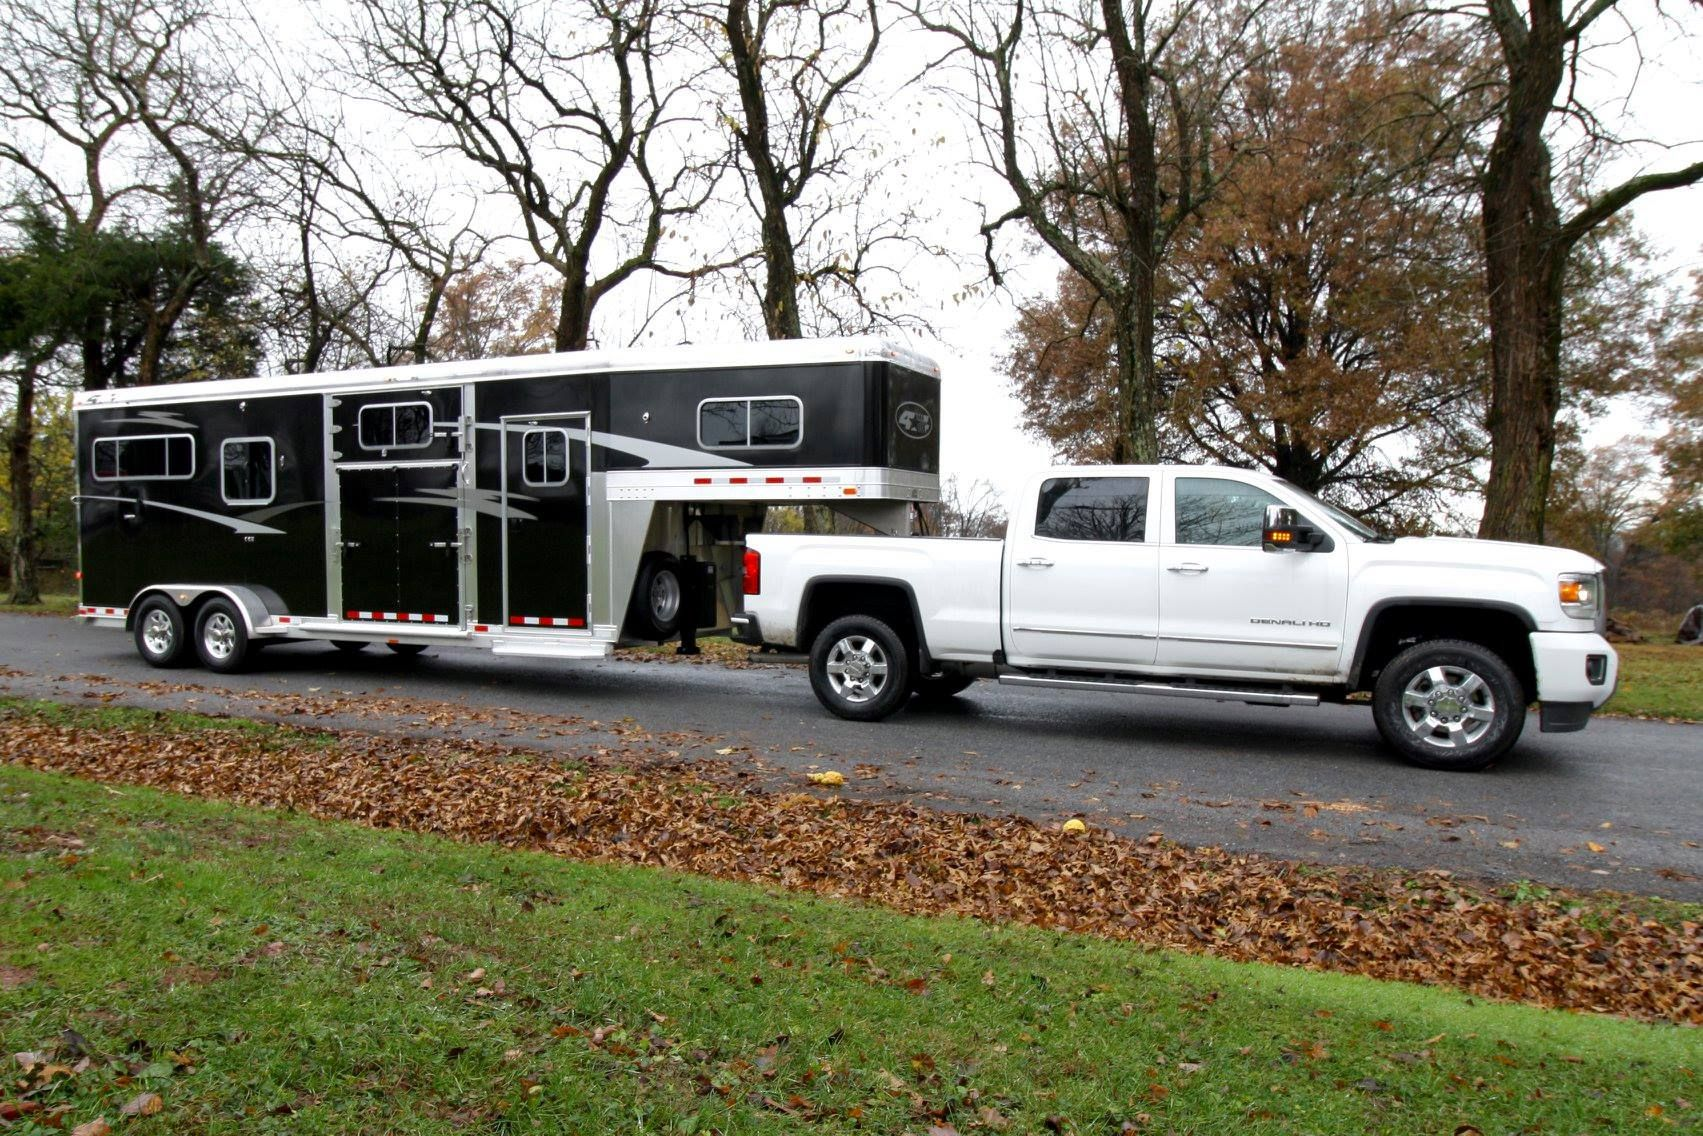 New 8 Ft Tall All Black 4 Star Runabout 2 1 Horse Trailer With Dressing Room Frank Dibella Deluxe Horse Vans 610 495 227 Horse Trailer Horse Trailers Horses